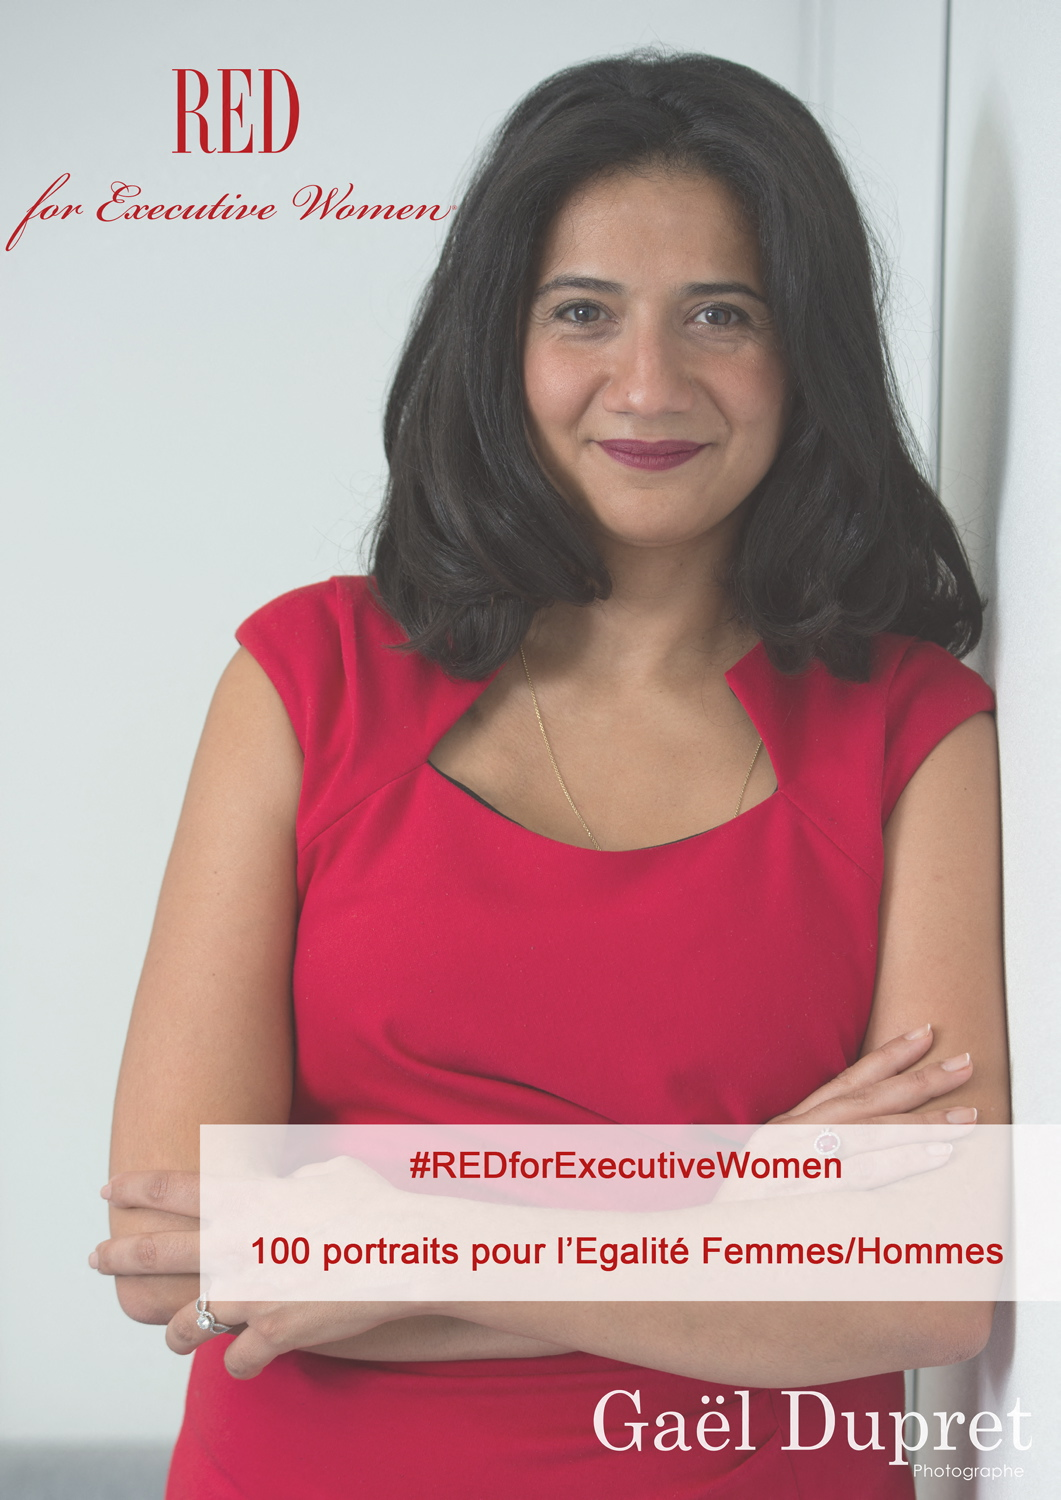 red-for-executive-women-100-portraits-pour-egalite-femmes-hommes-gael-dupret